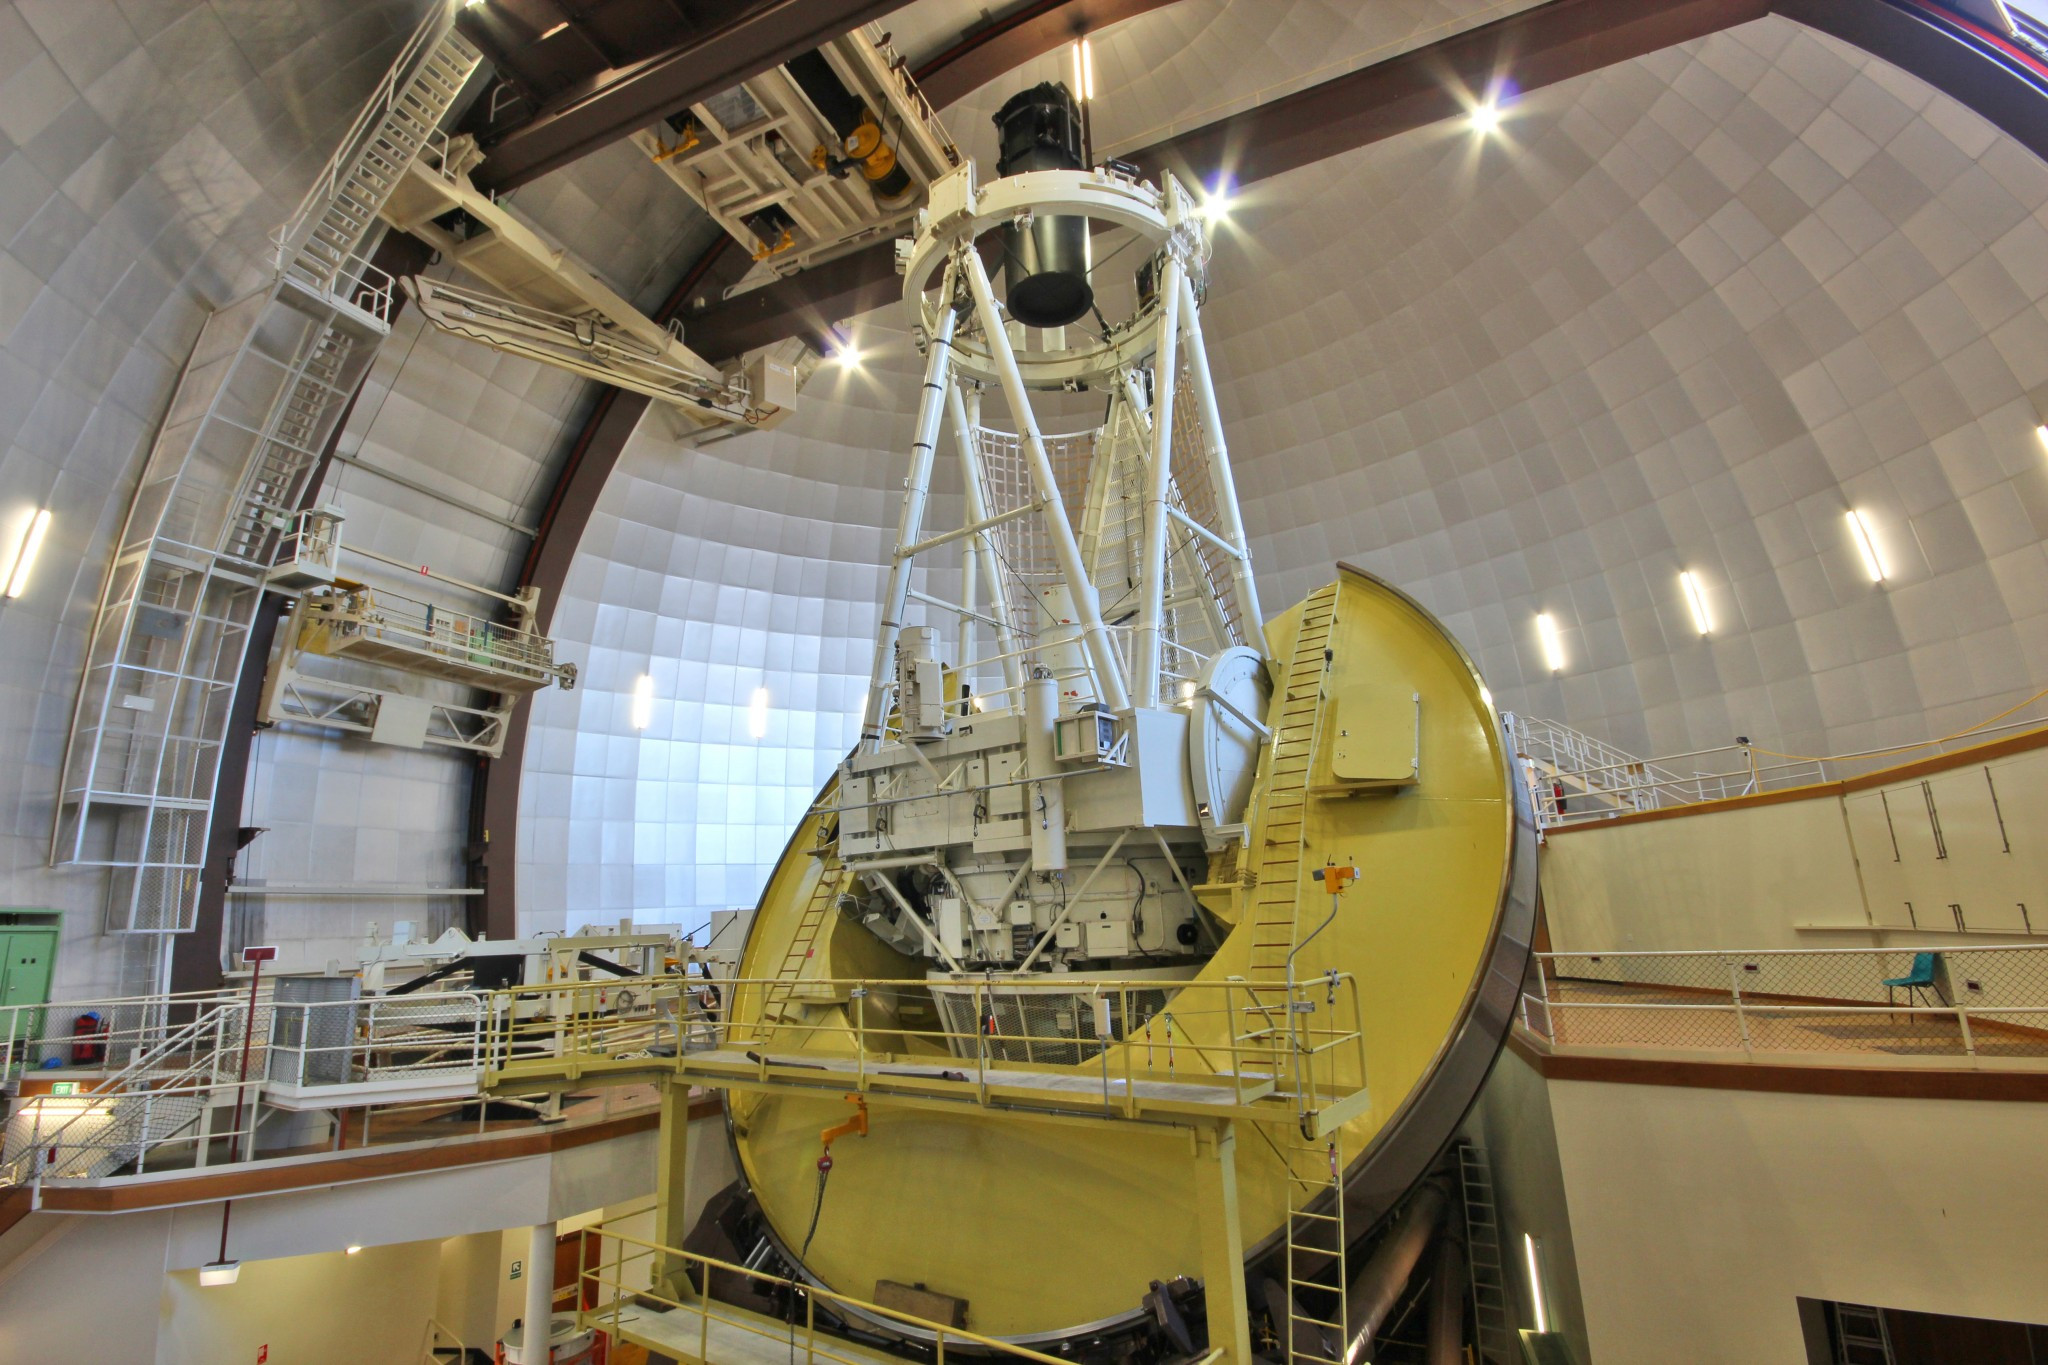 The 3.9-metre Anglo-Australian Telescope located at Siding Spring Observatory in New South Wales. Image credit: Angel Lopez-Sanchez/AAO.